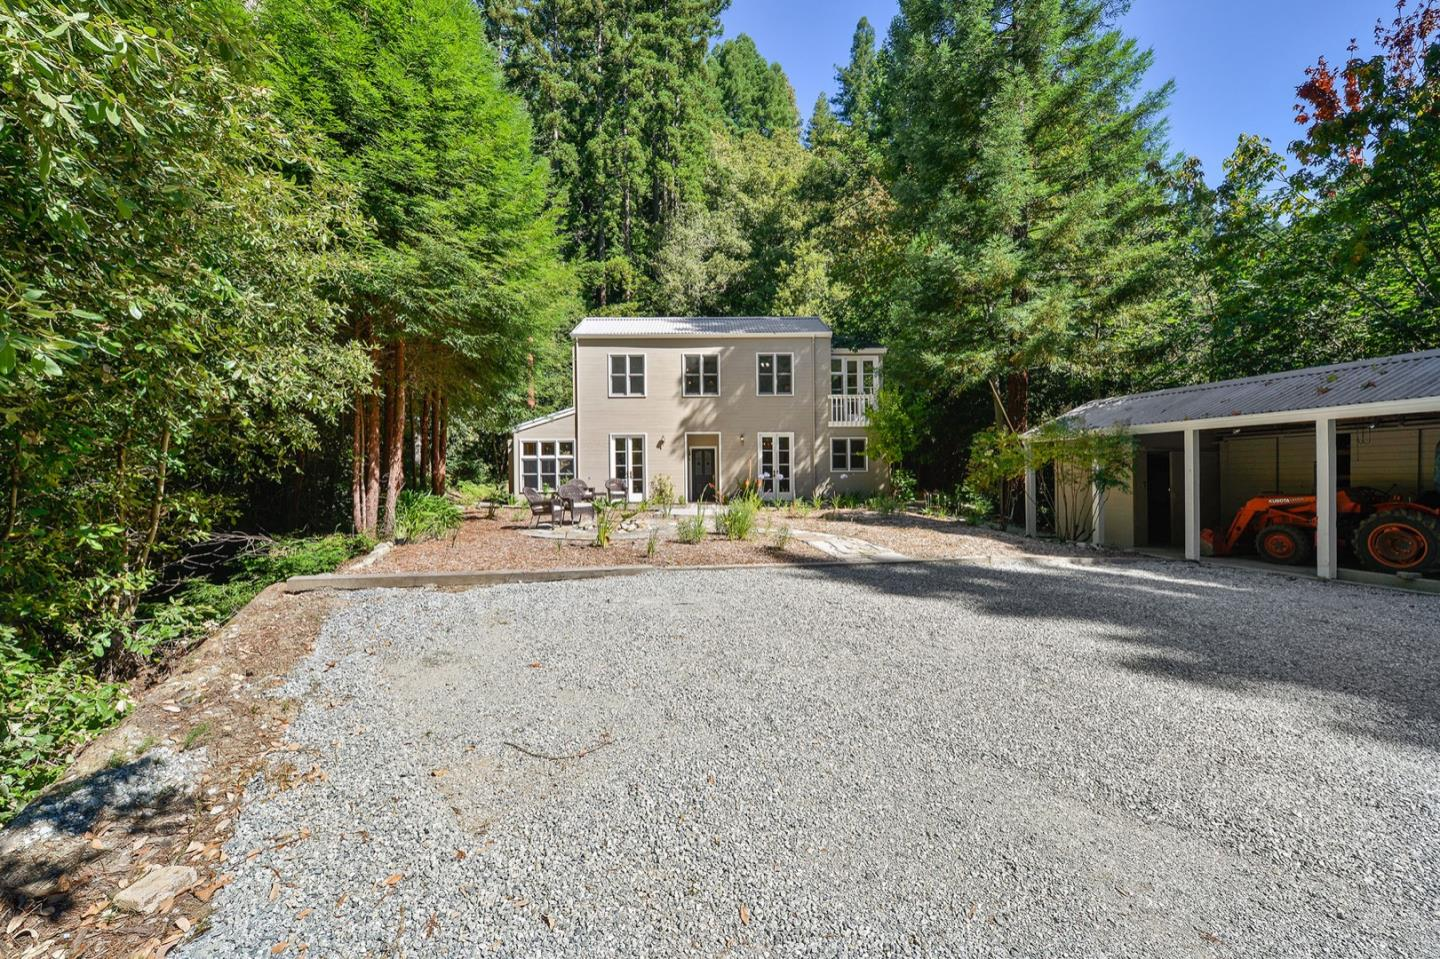 Beautiful custom built home on 10+- acres. Extremely private. Gorgeous redwoods all around. Could be a 4 bedroom home. Beautiful built-ins and French doors in every room. Heated tile floors. Custom tile throughout. Office with separate entrance. Sunny, grassy yard with flowers. Creek on property.